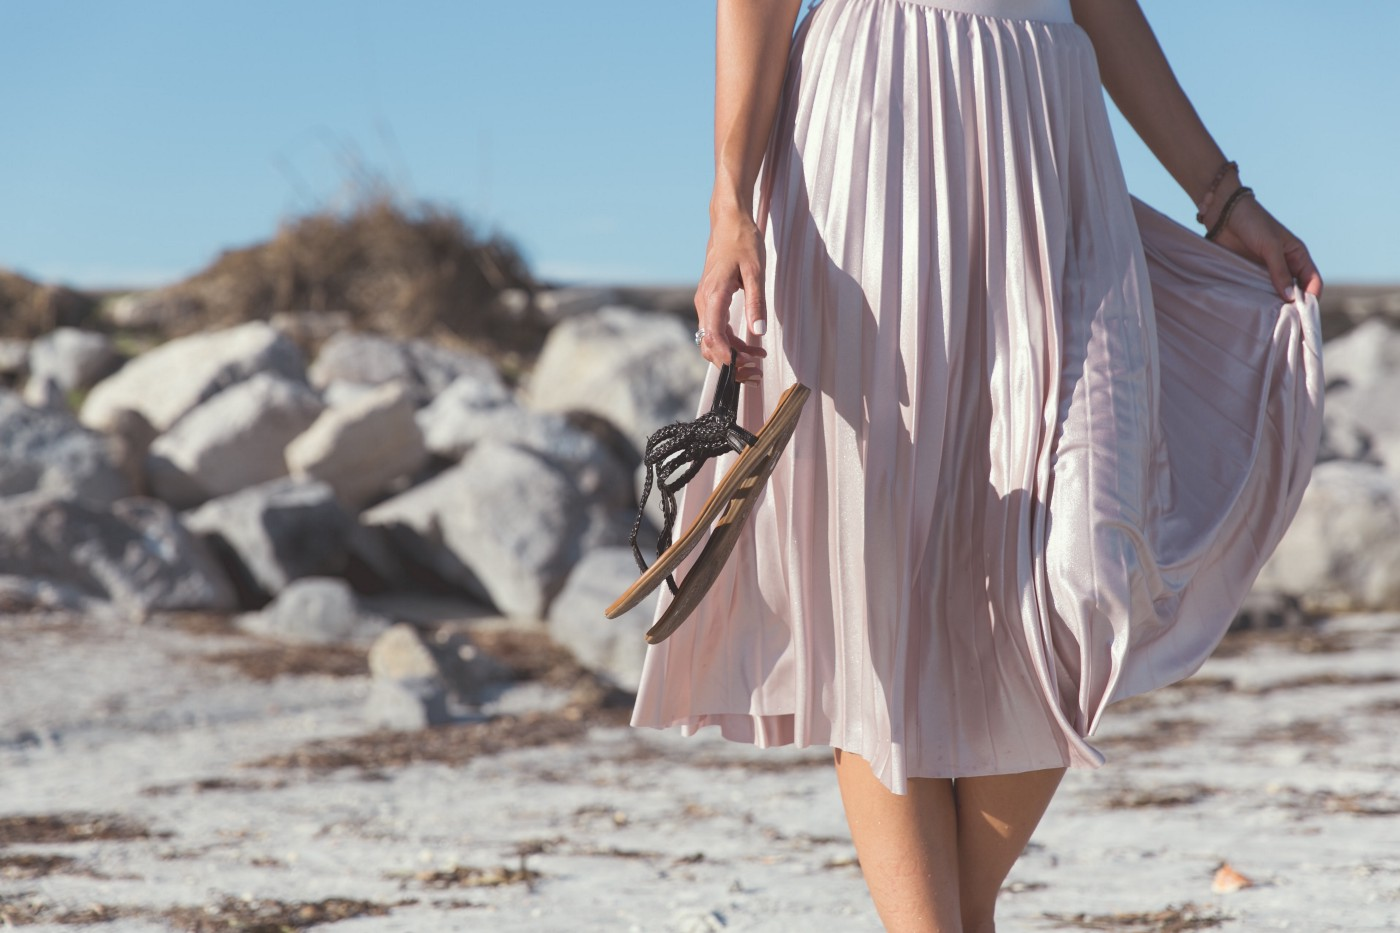 White woman in pleated pink dress shown from the waist down, carrying sandals, her bare arms and legs below knees showing as she walks on a sandy beach.